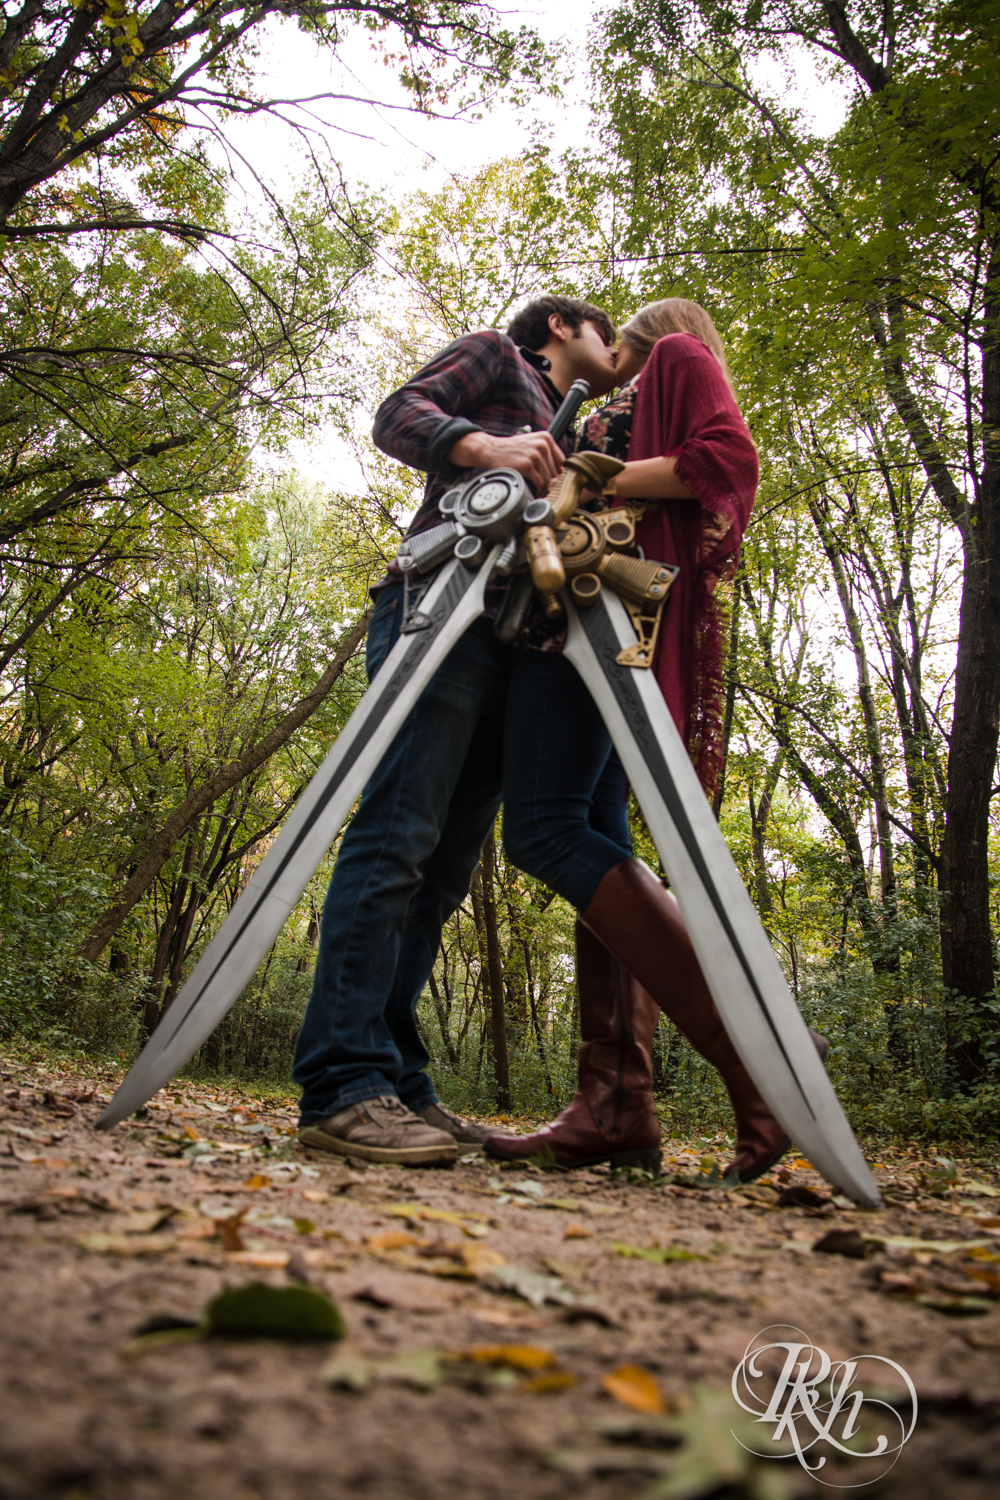 Katie & Brian - Minnesota Engagement Photography - Cosplay - RKH Images - Blog  (19 of 20).jpg